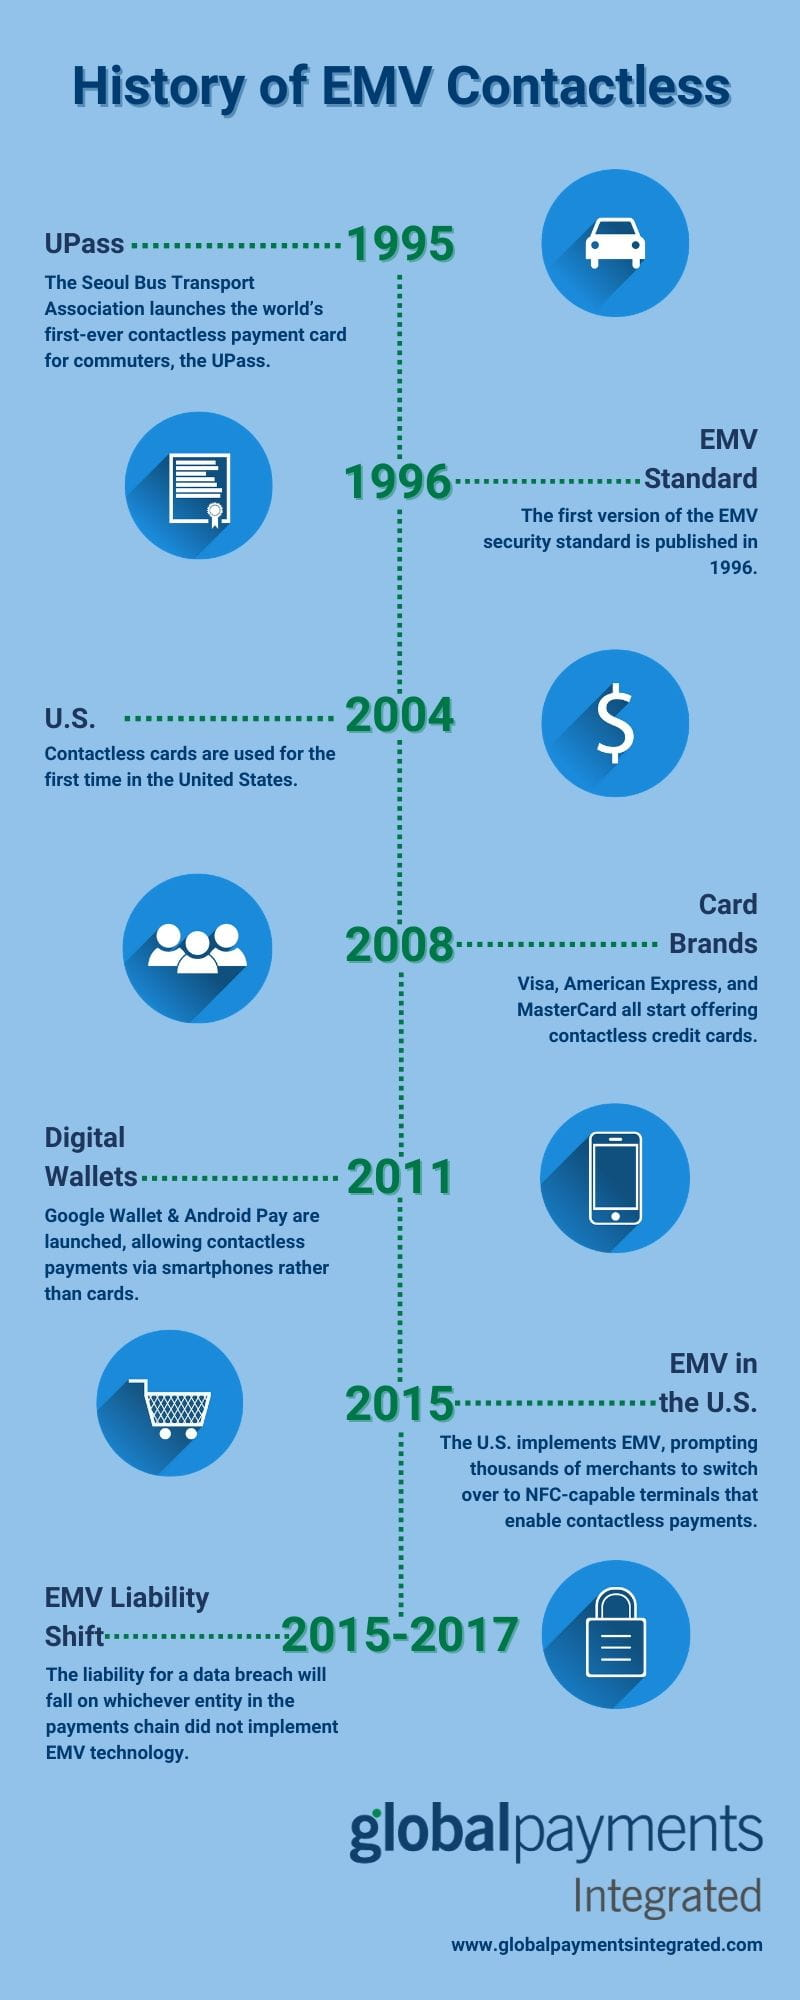 Infographic showing the history of EMV contactless